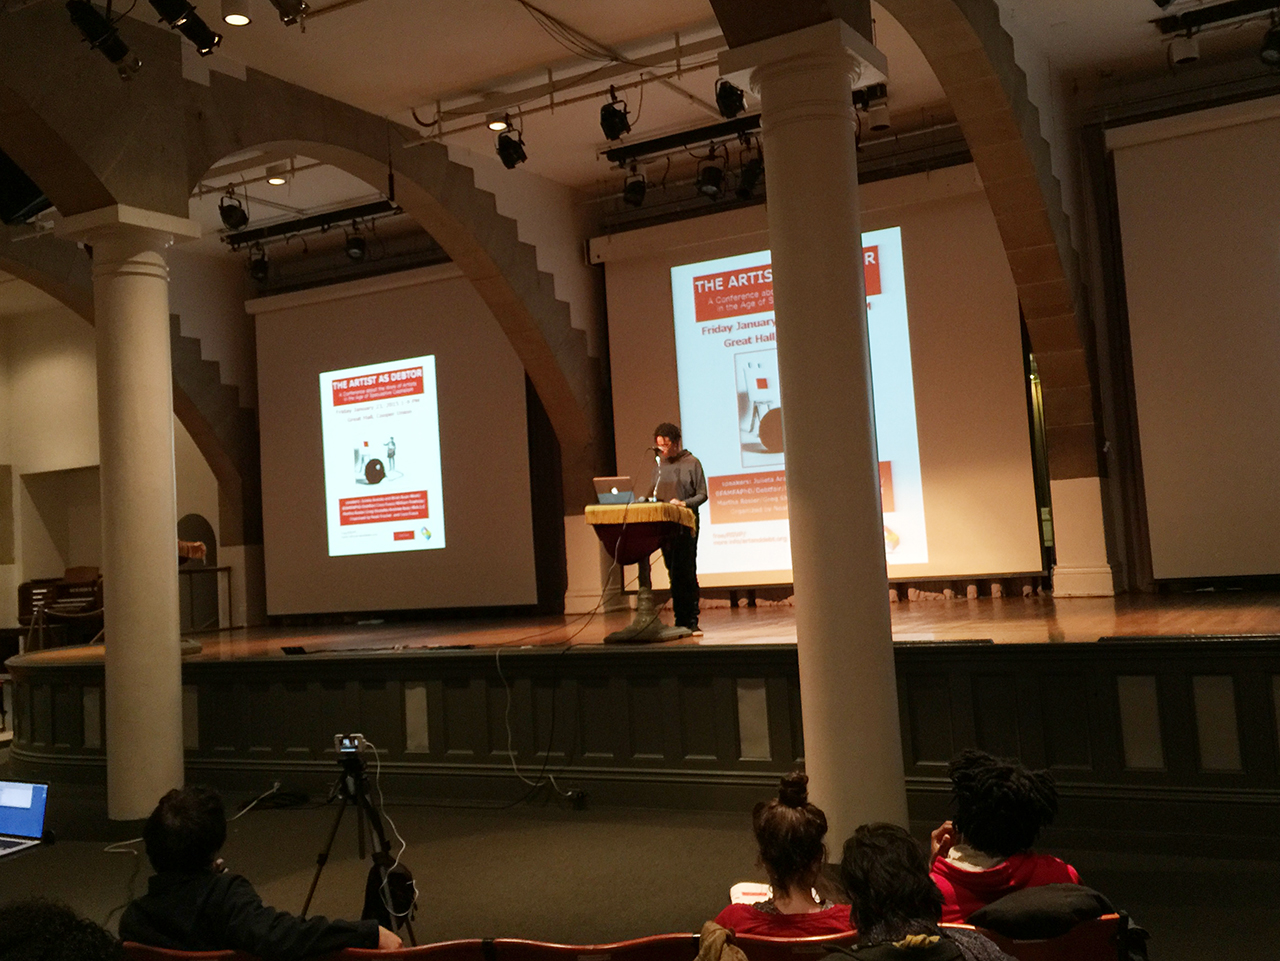 Coco Fusco introducing the conference (all photos by Hyperallergic staff for Hyperallergic)